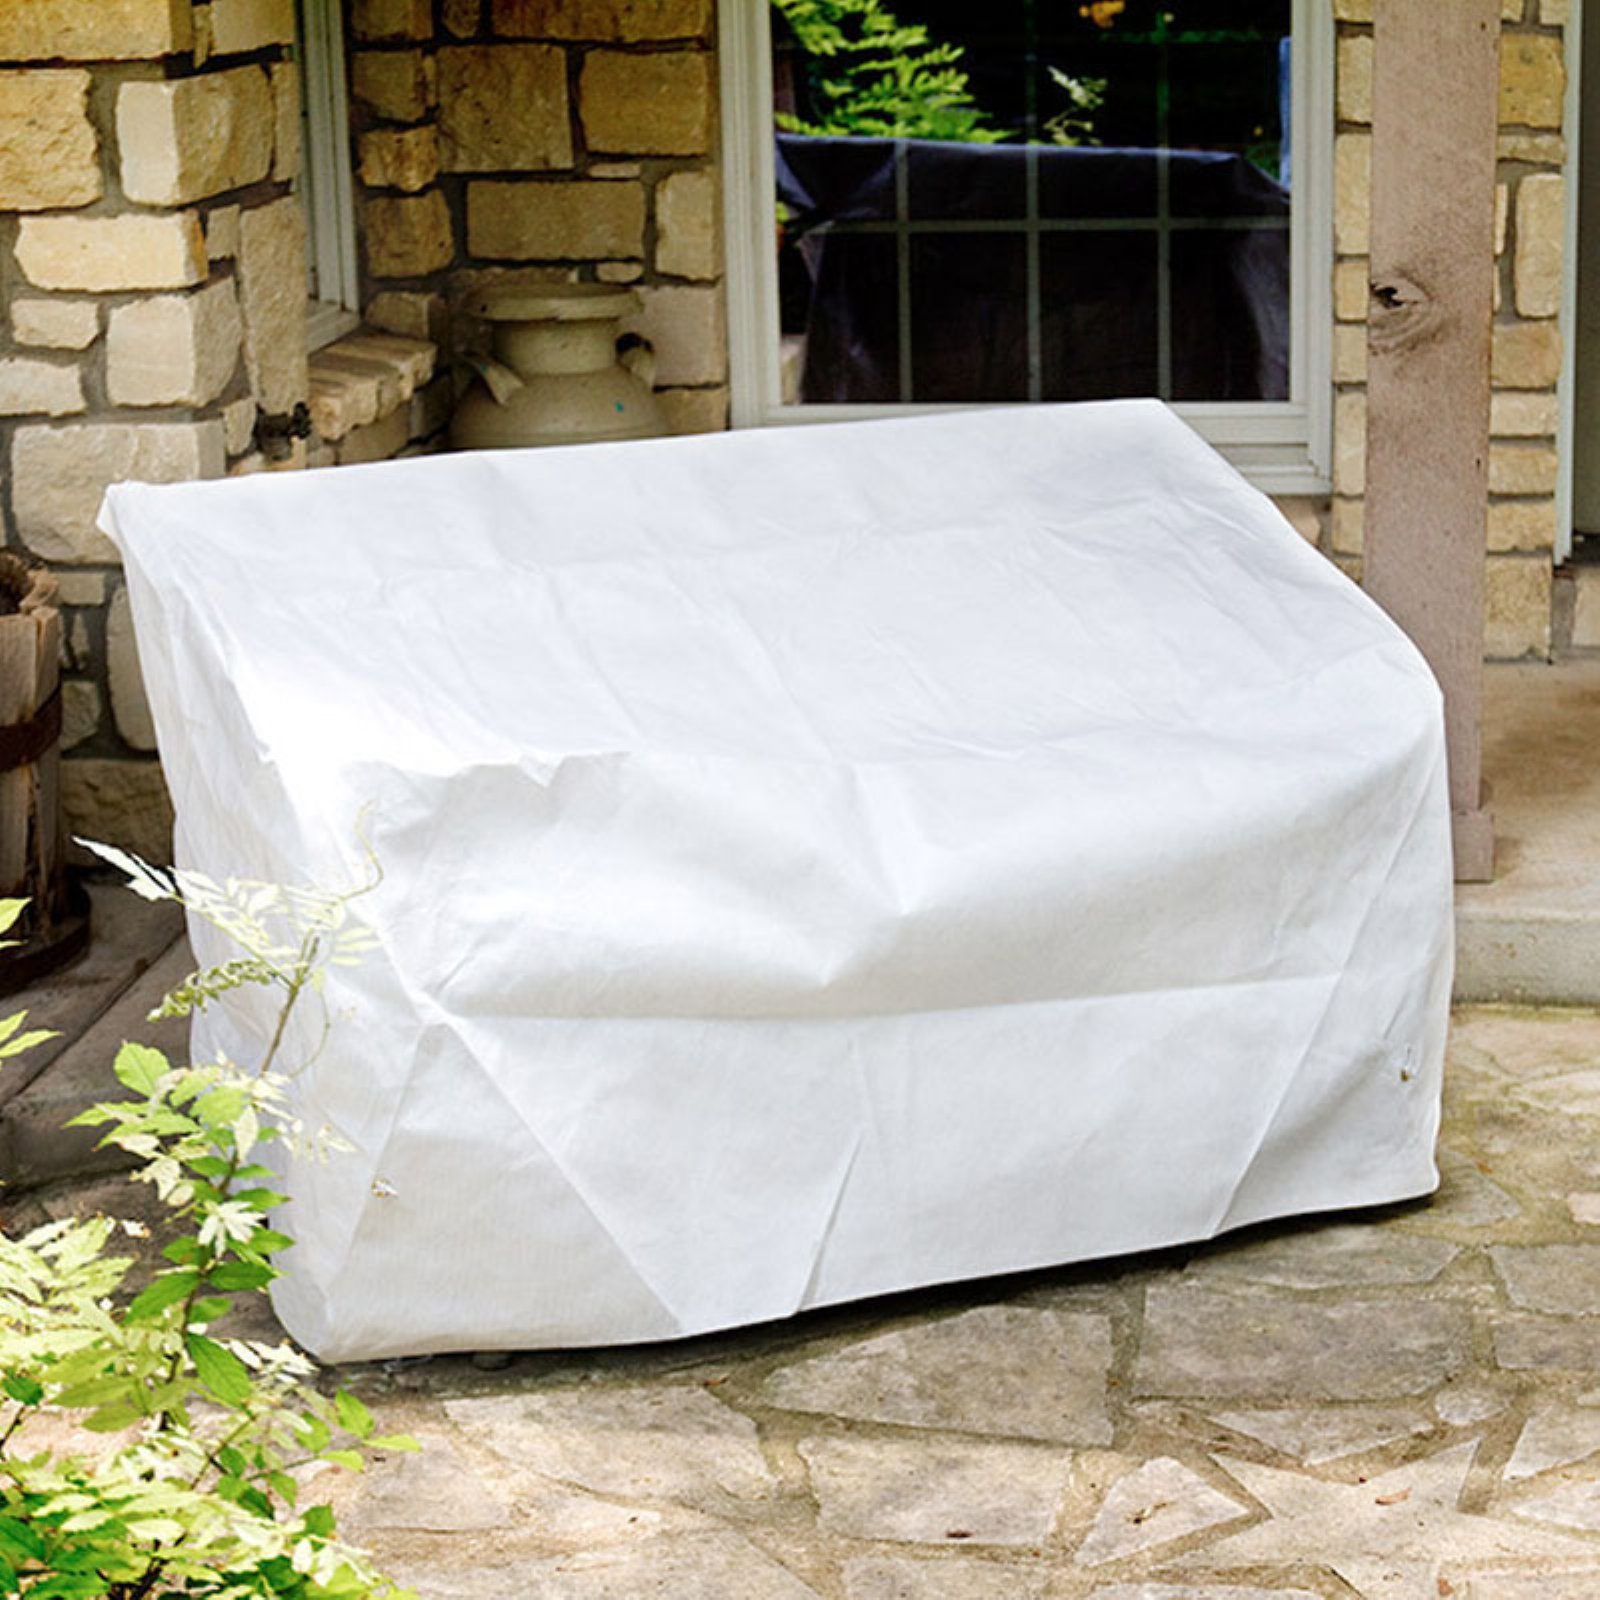 KoverRoos SupraRoos White Glider / Lounge Cover